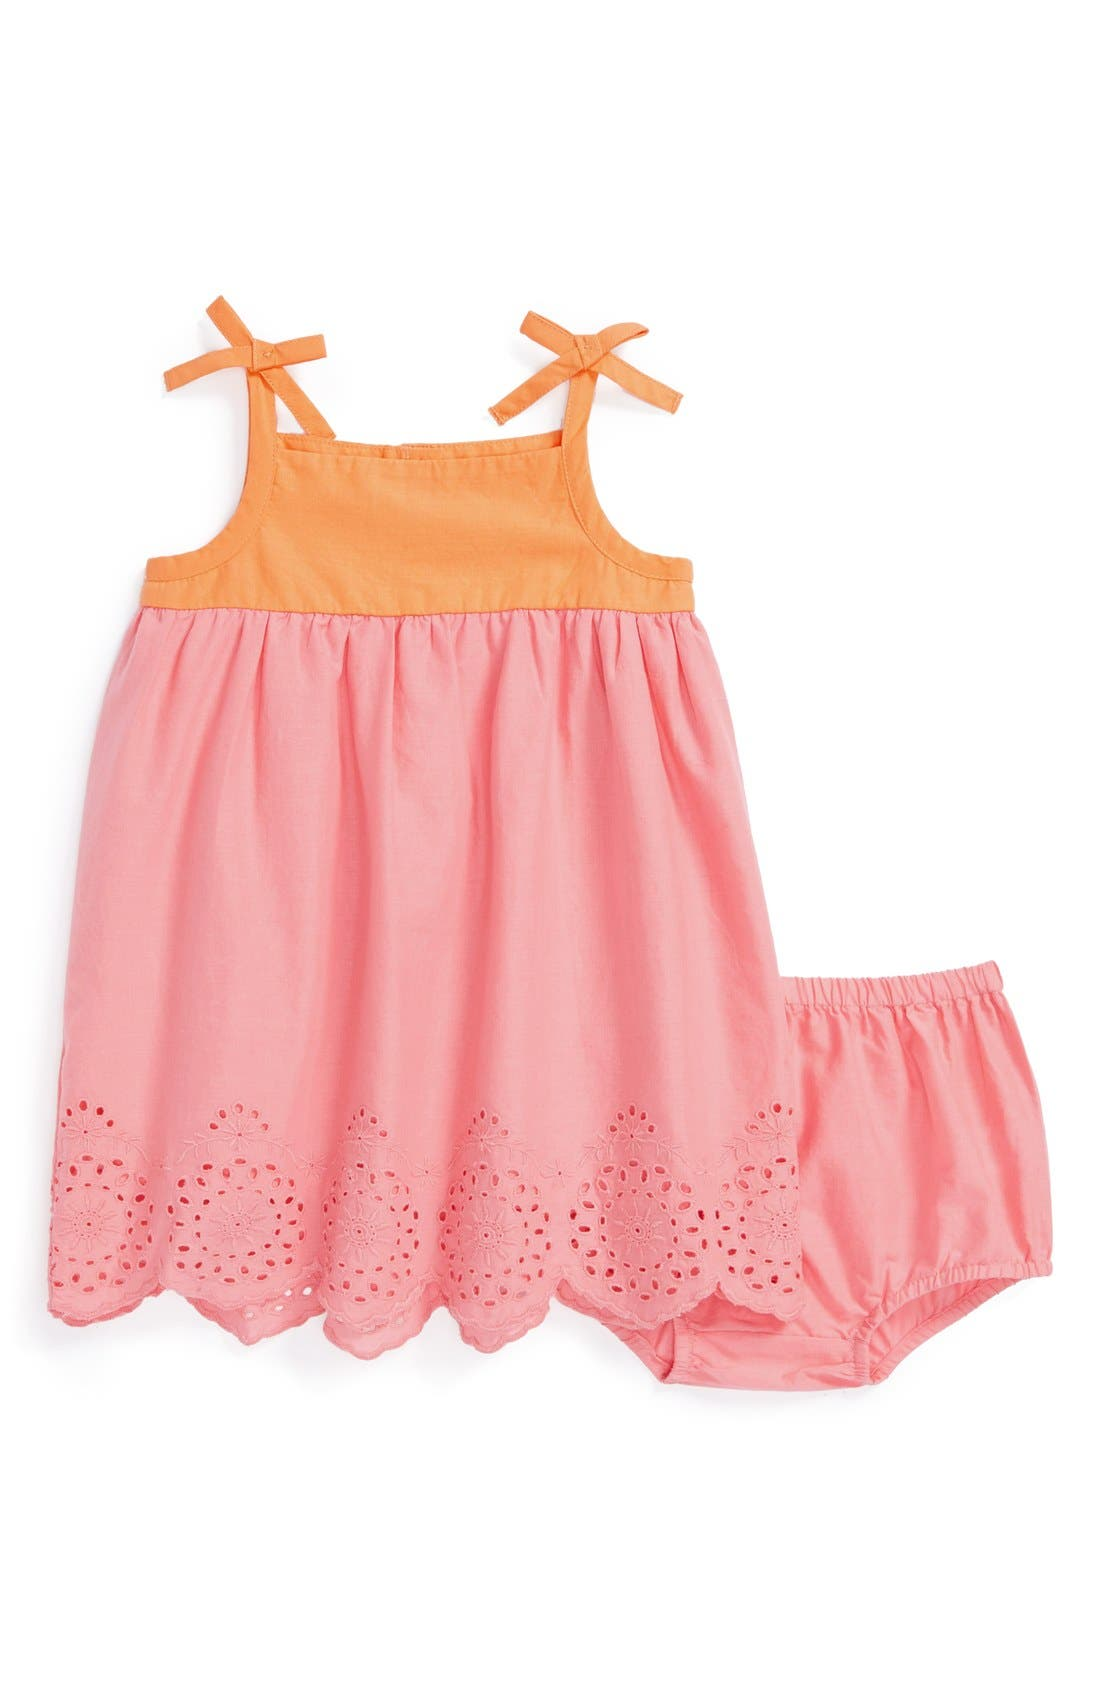 Alternate Image 1 Selected - Tucker + Tate Sleeveless Sundress & Bloomers (Baby Girls)